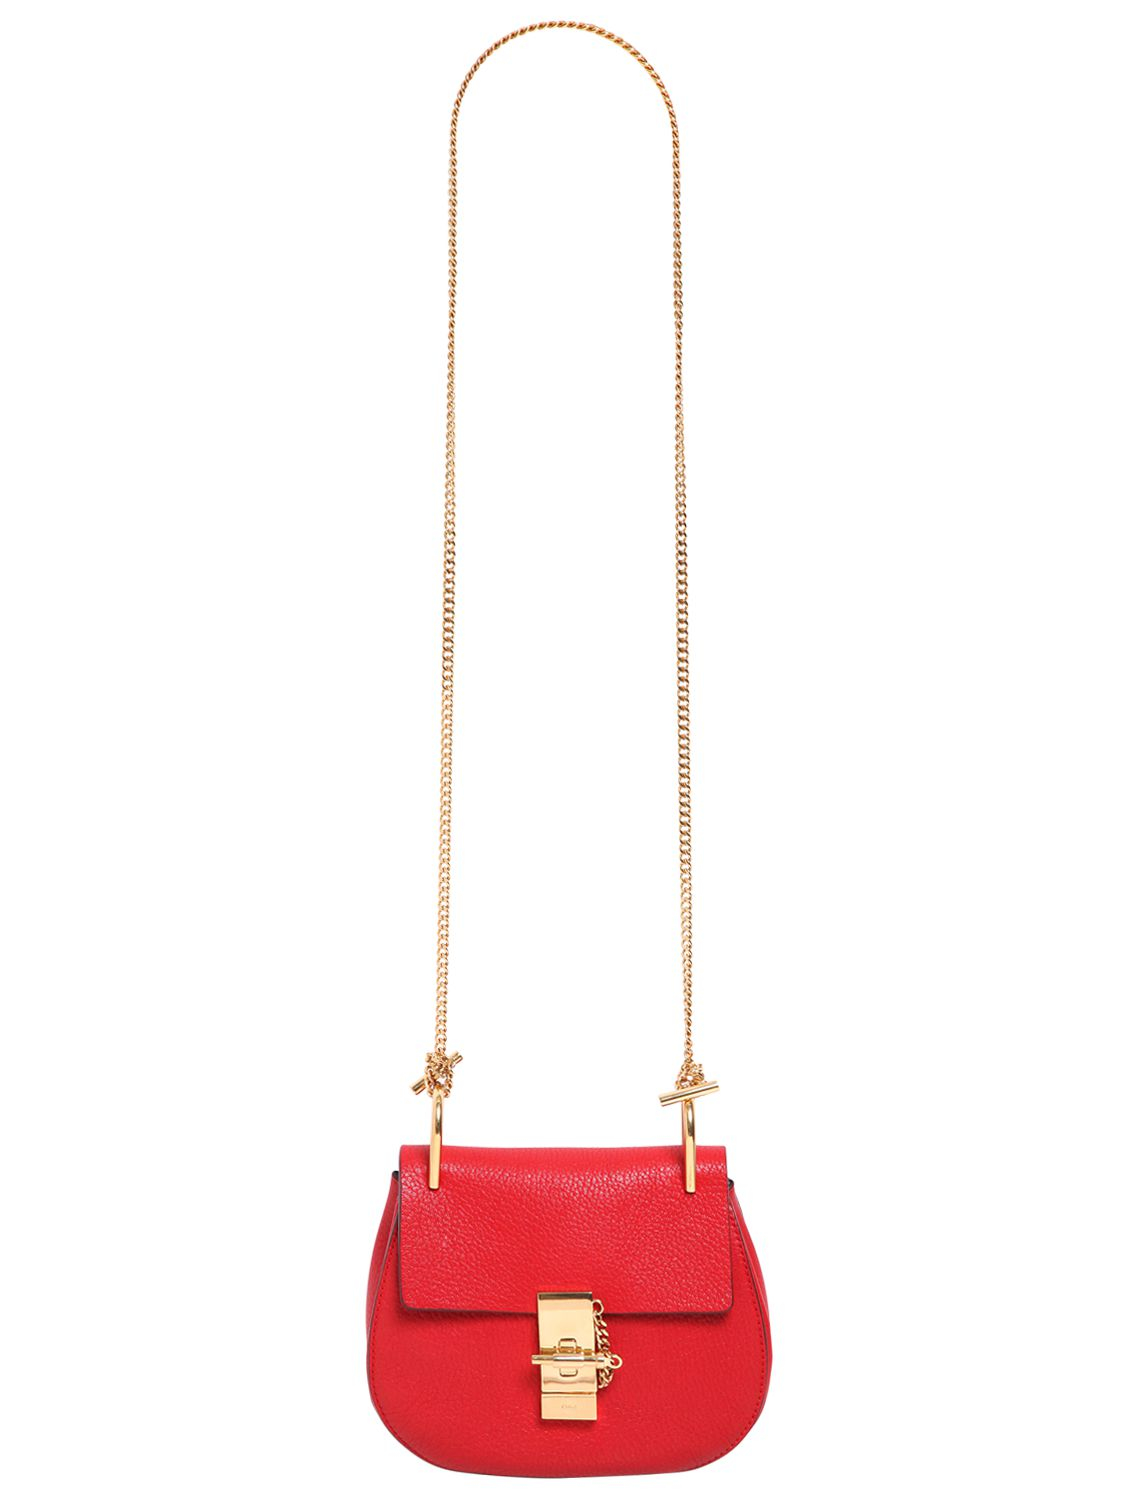 Chlo¨¦ Mini Drew Grained Nappa Leather Bag in Red (PLAID RED) | Lyst